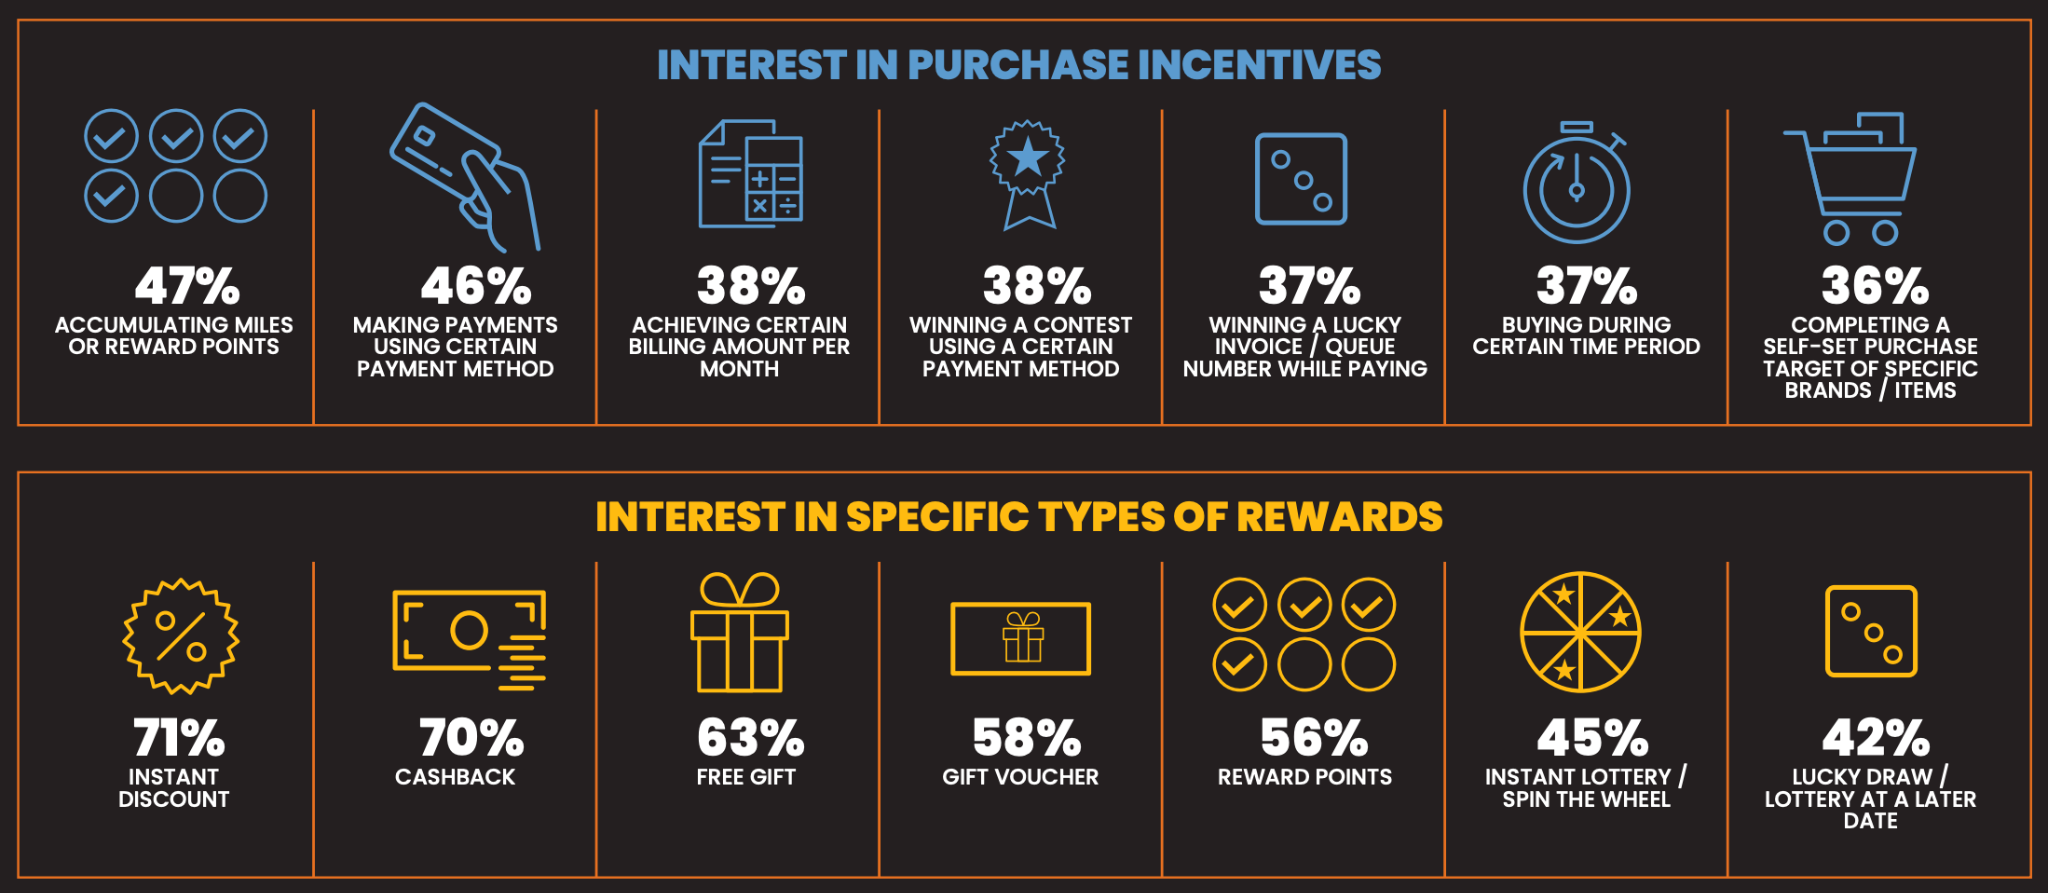 interest in purchase incentive and rewards